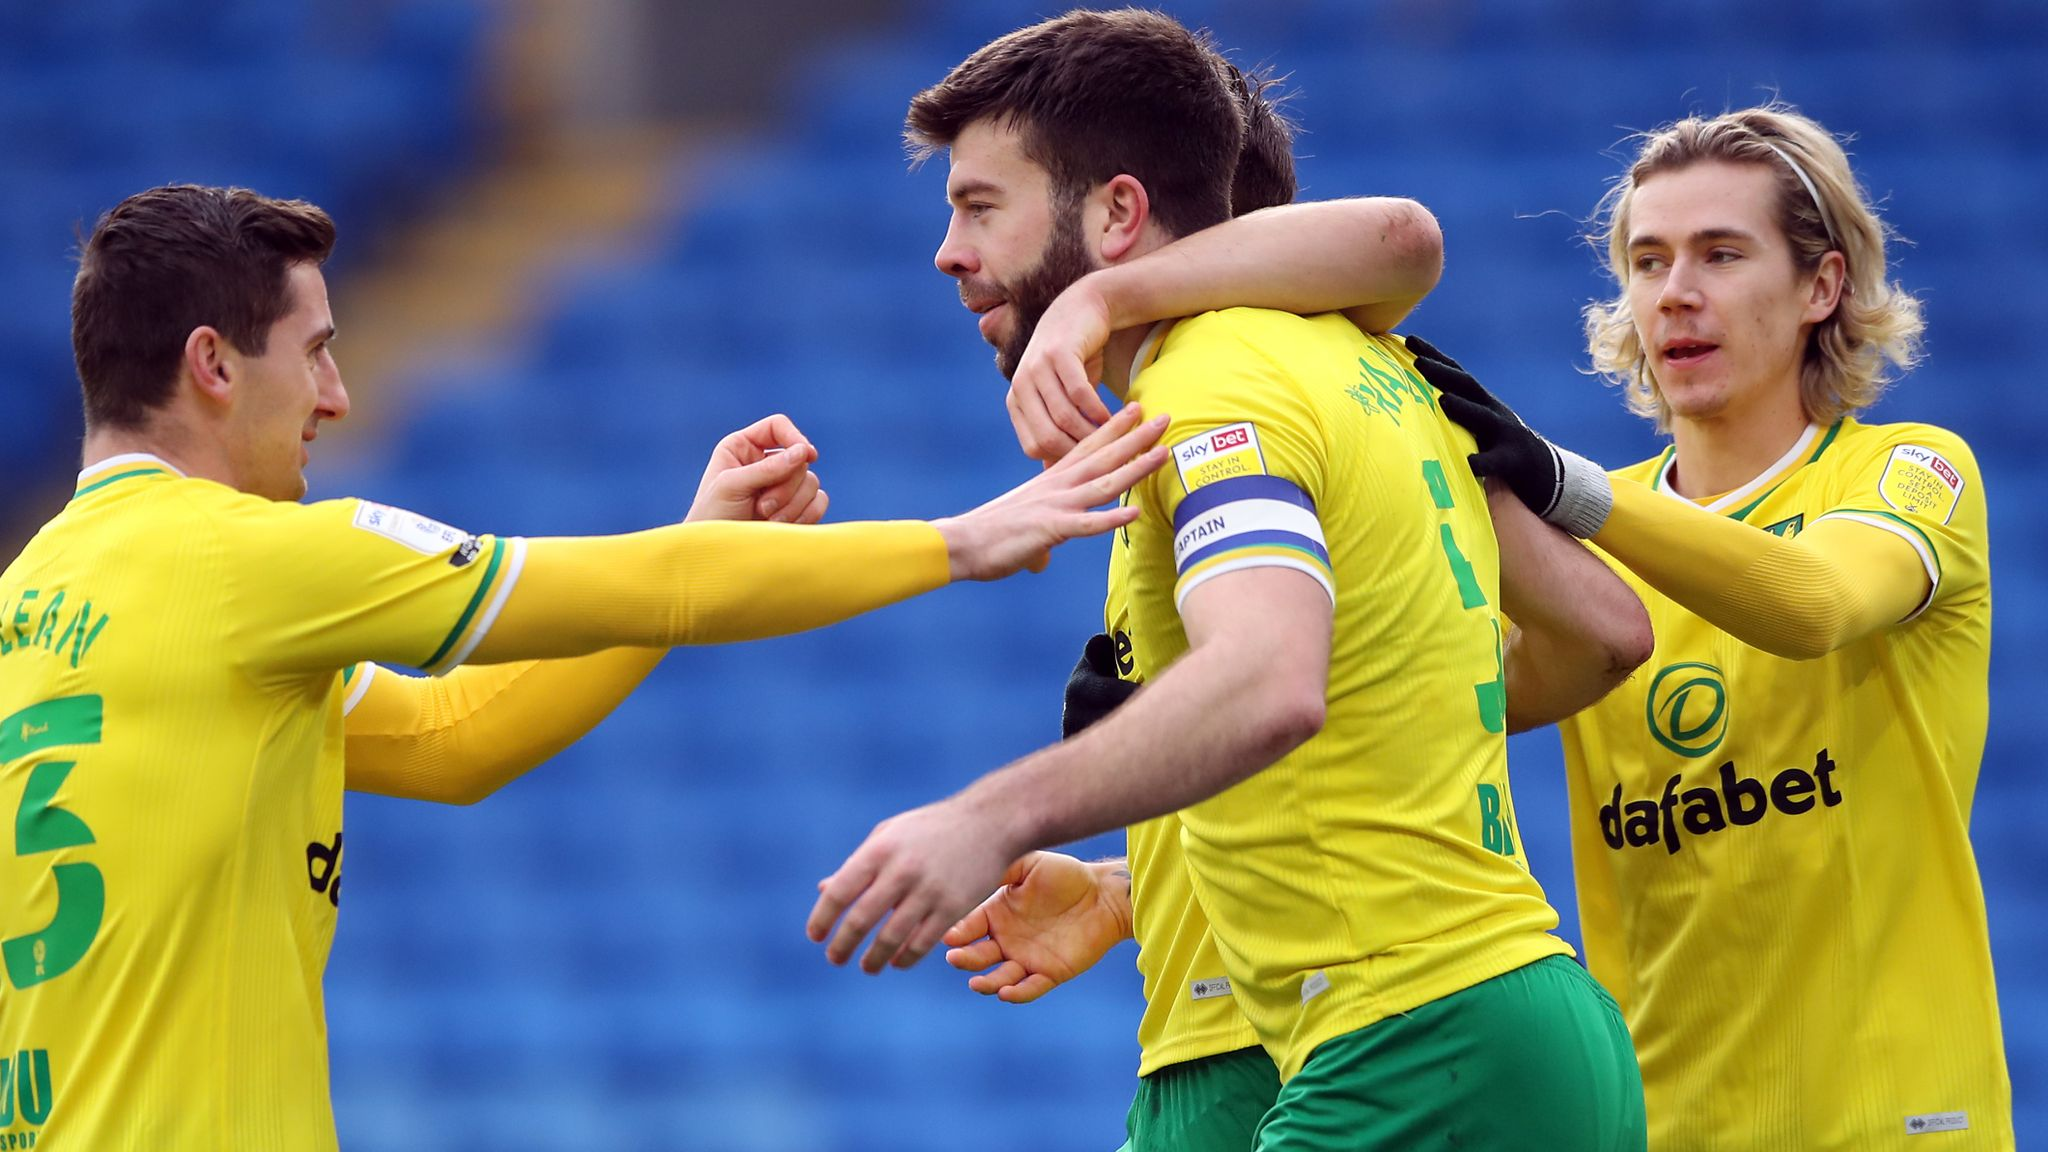 Cardiff City 1-2 Norwich City: Canaries march at top of Championship continues